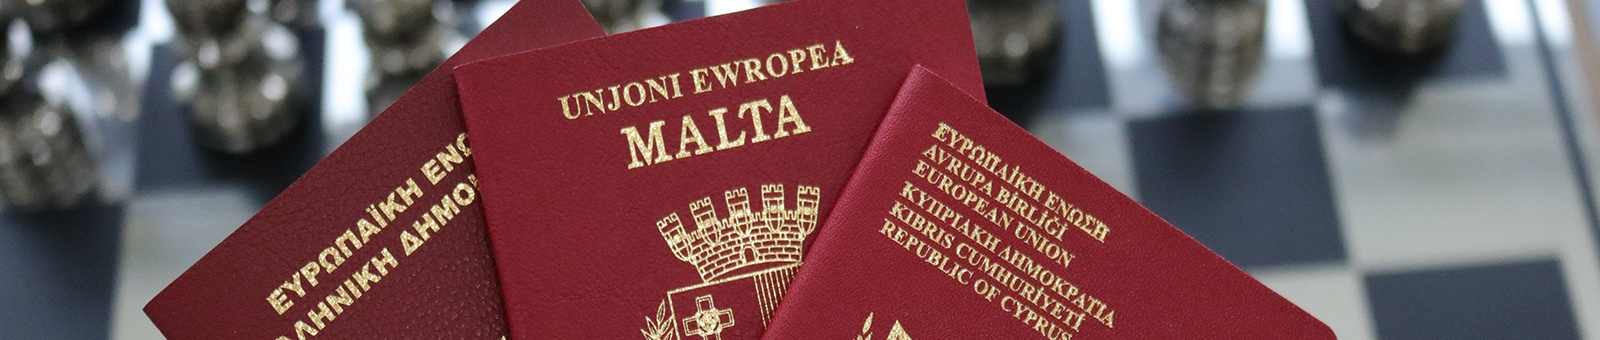 How to Become an EU Citizen in Just 90 Days, Part Two